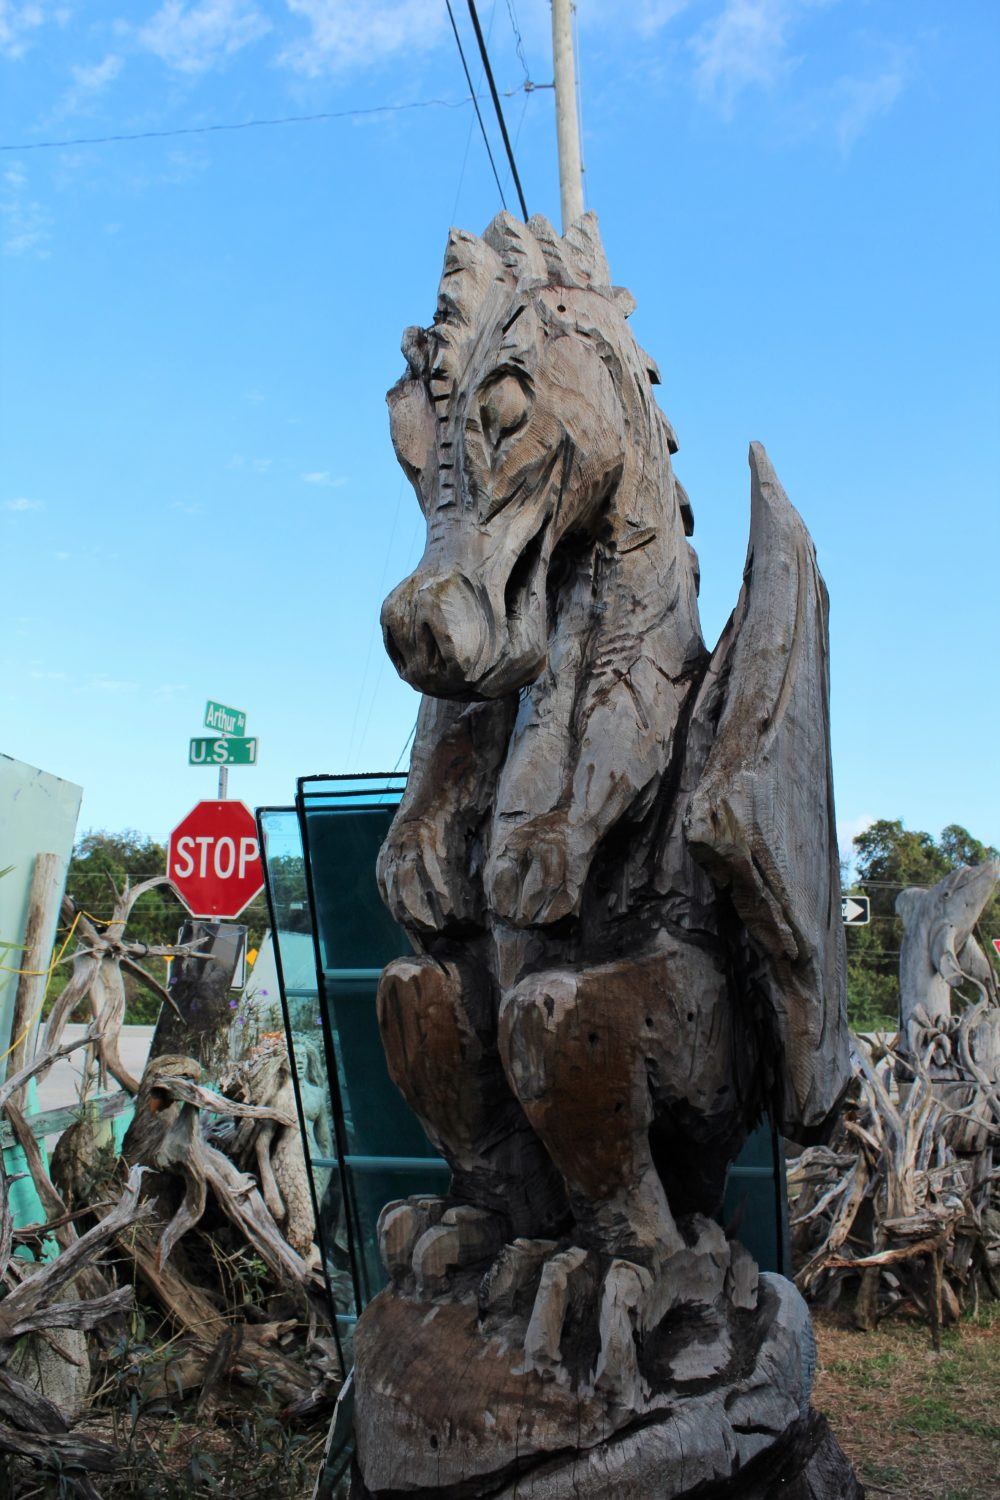 This dragon is over ten feet tall!